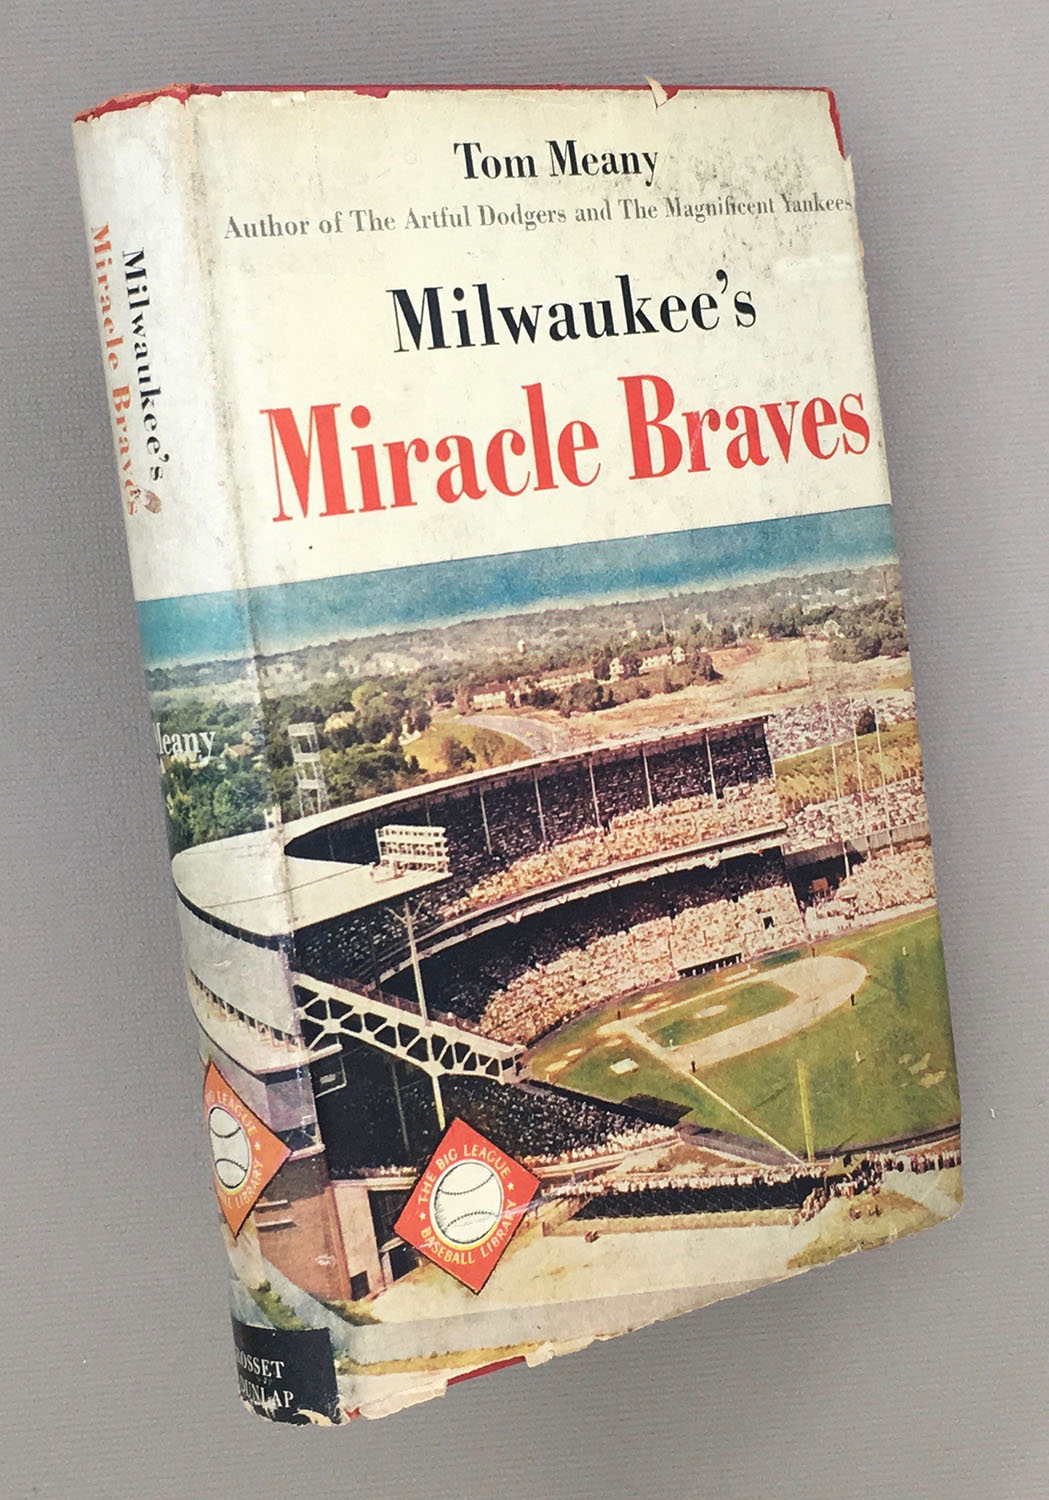 Milwaukee's Miracle Braves Tom Meany